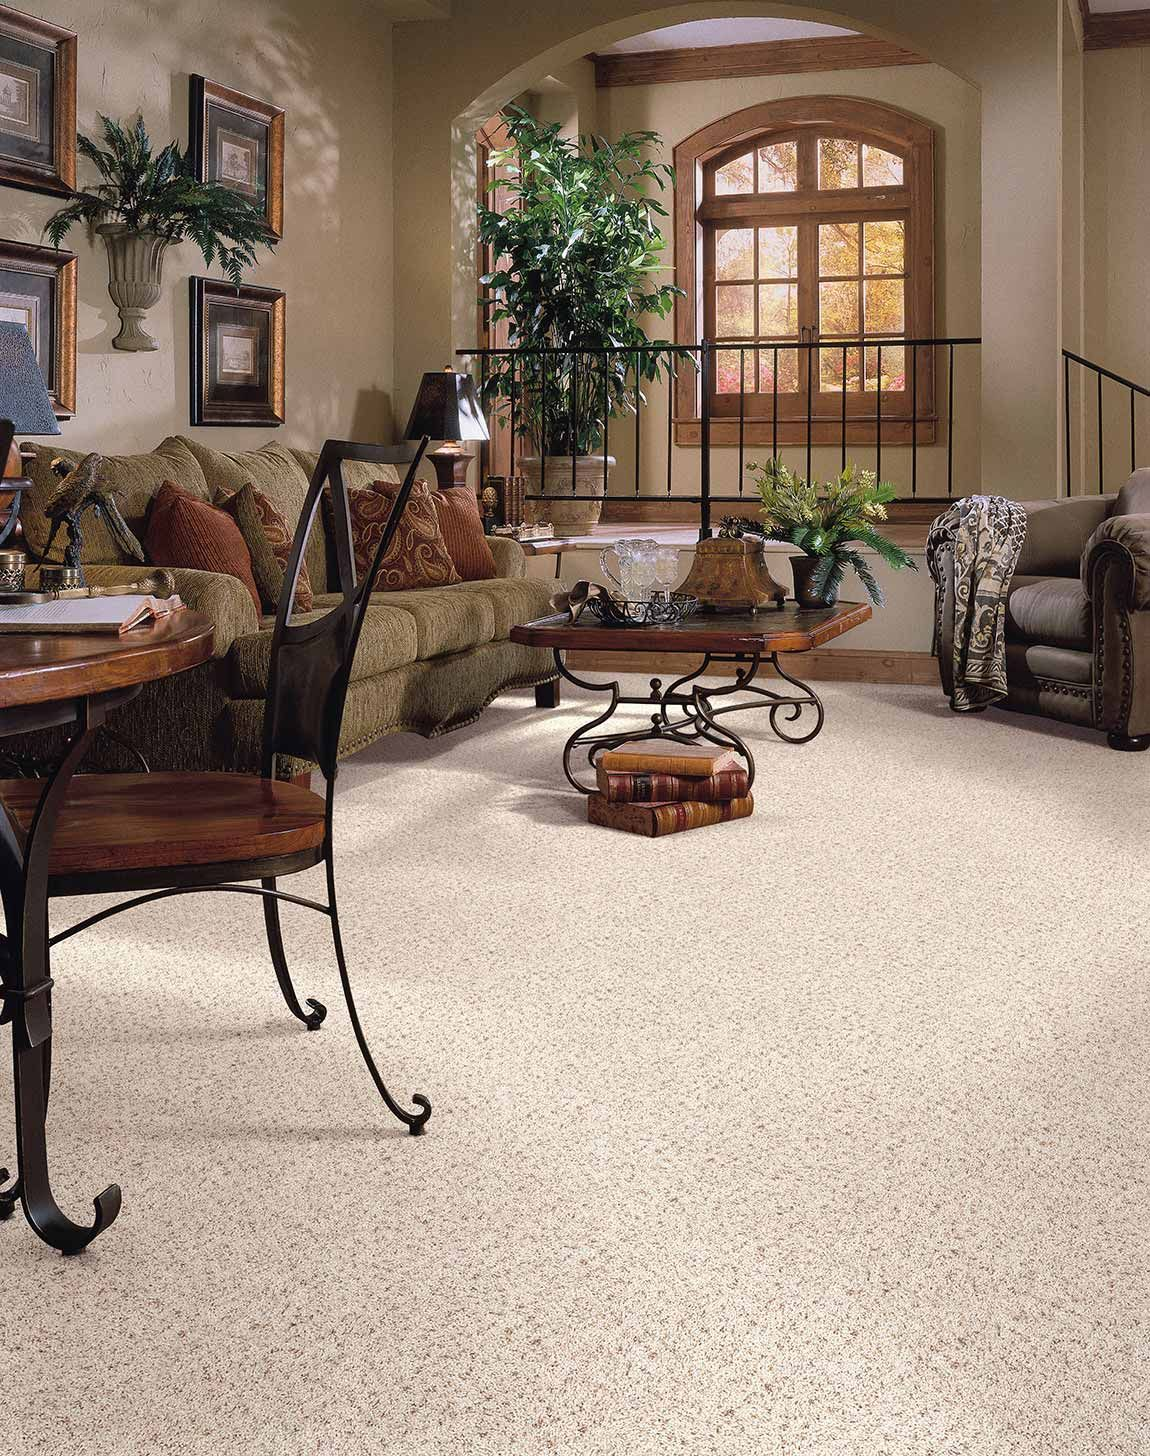 Virtual Design Living Room: Living Room-Classic Traditional-Carpet-Tans-Browns In 2020